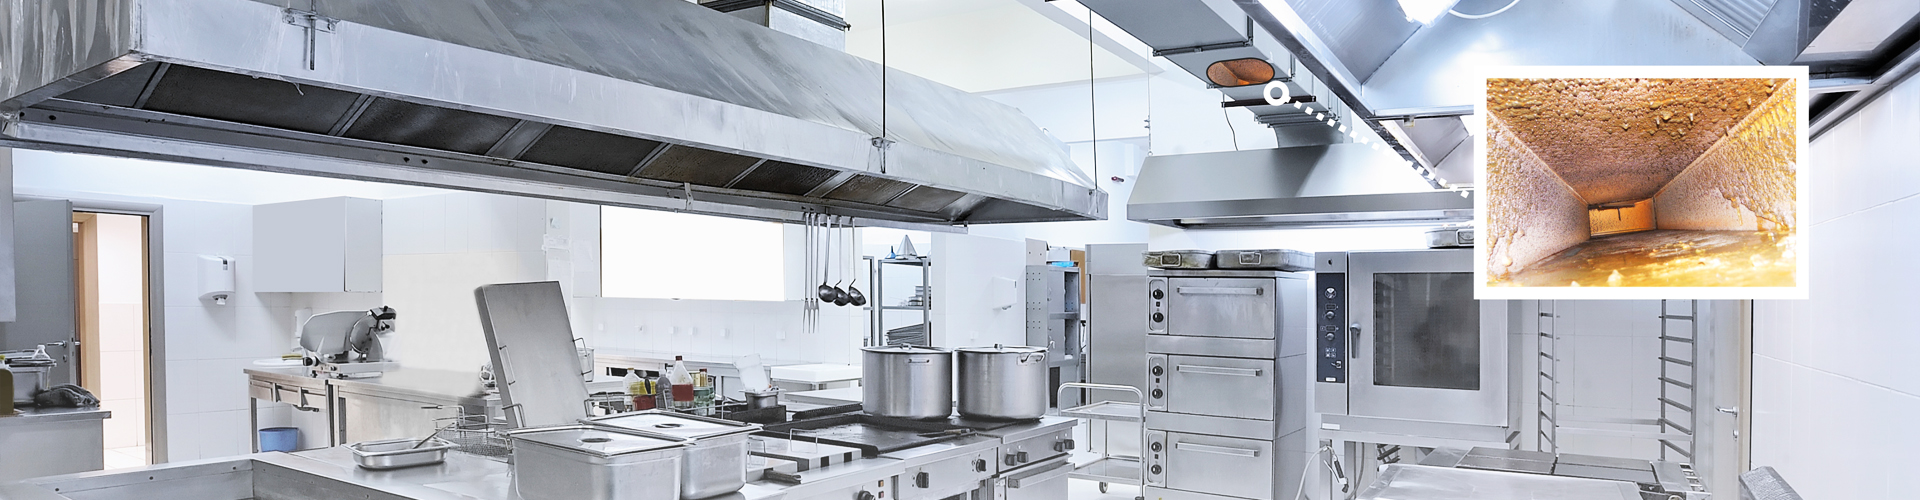 Kitchen Exhaust Cleaning Equipment - Kitchen Exhaust Cleaning